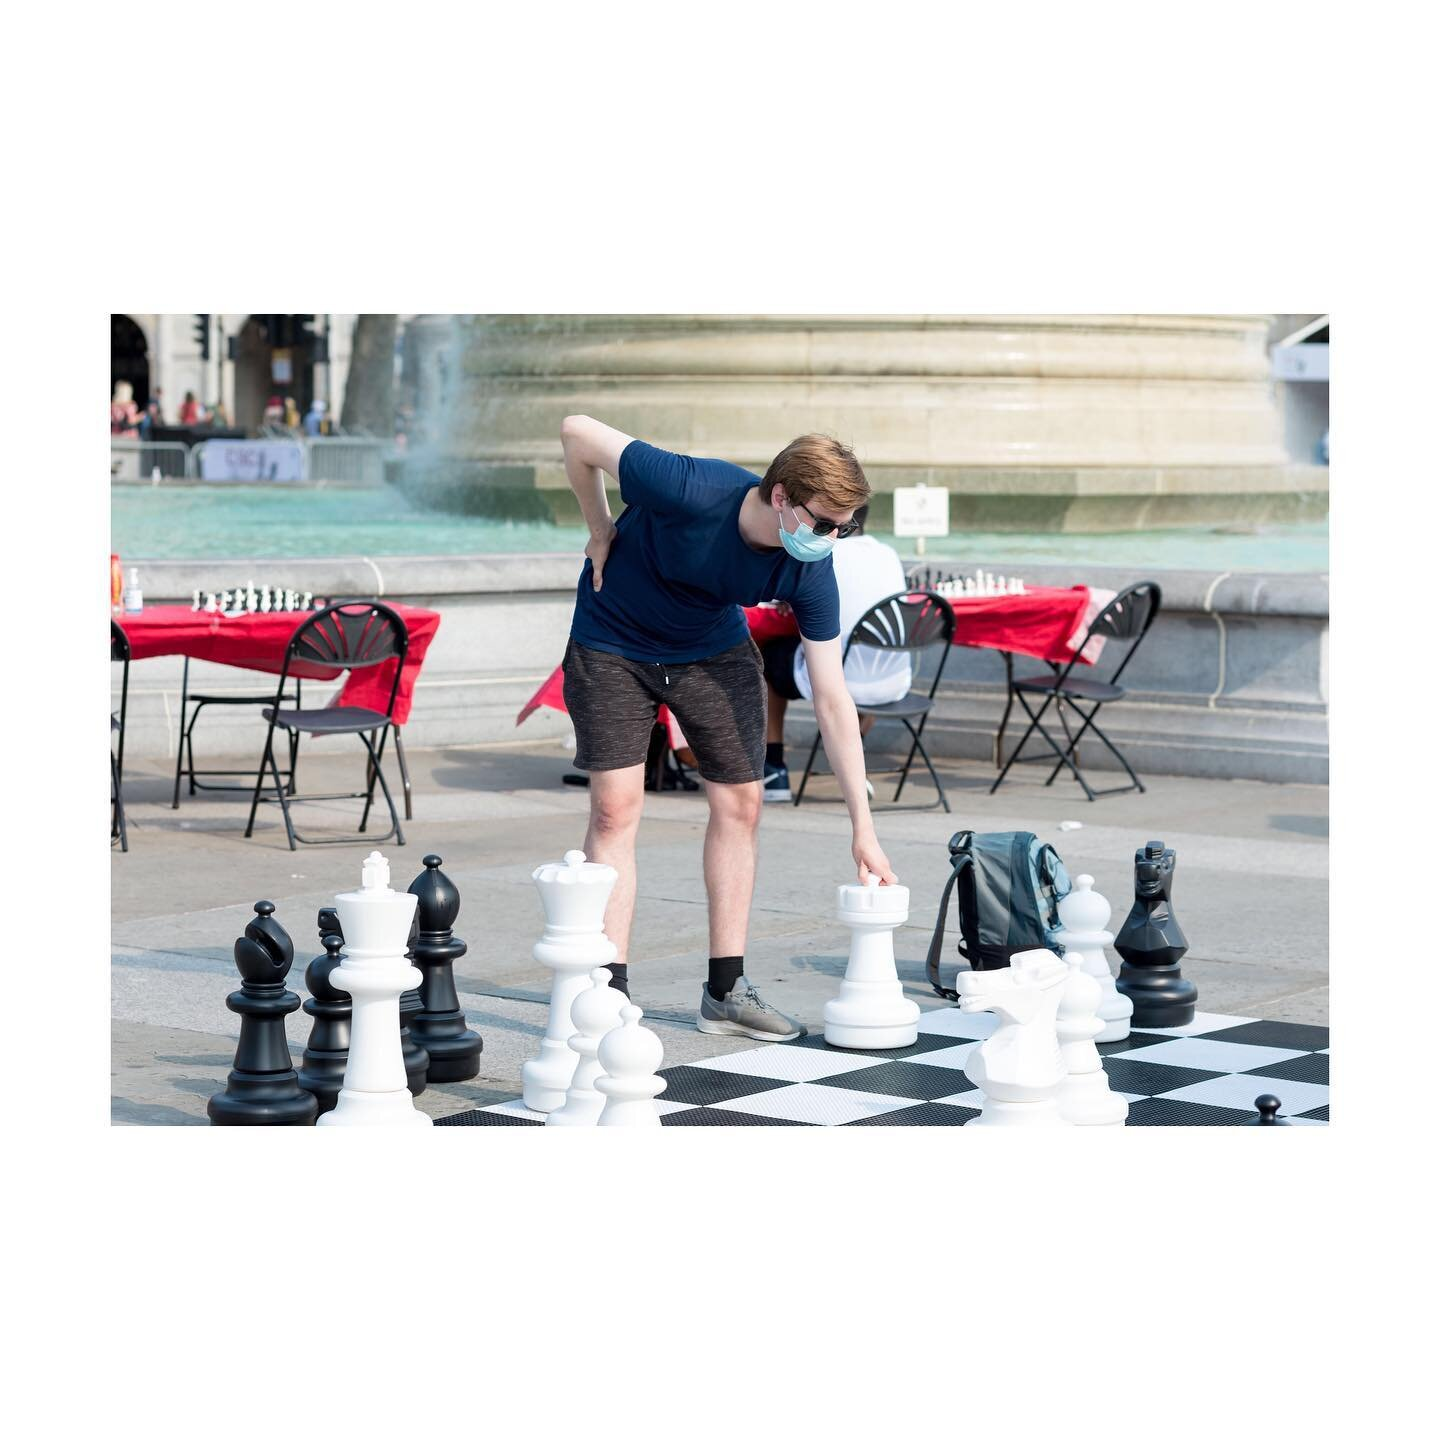 Photojournalism on @yahoonews   18th July at Trafalgar Square - @londonchessfest hosted by Chess in Schools and Communities and supported by @xtxmarkets. A man was seen taking a move on a life-sized chessboard.  #londonphotographer #londonphotography #londonphotojournalist #ukphotogtapher #ukphotojournalist #photojournalist #photojournalism #documentaryphotography #documentaryphotographer #documentingbritain #womenstreetphotographers #londoncameraproject #womenphotograph